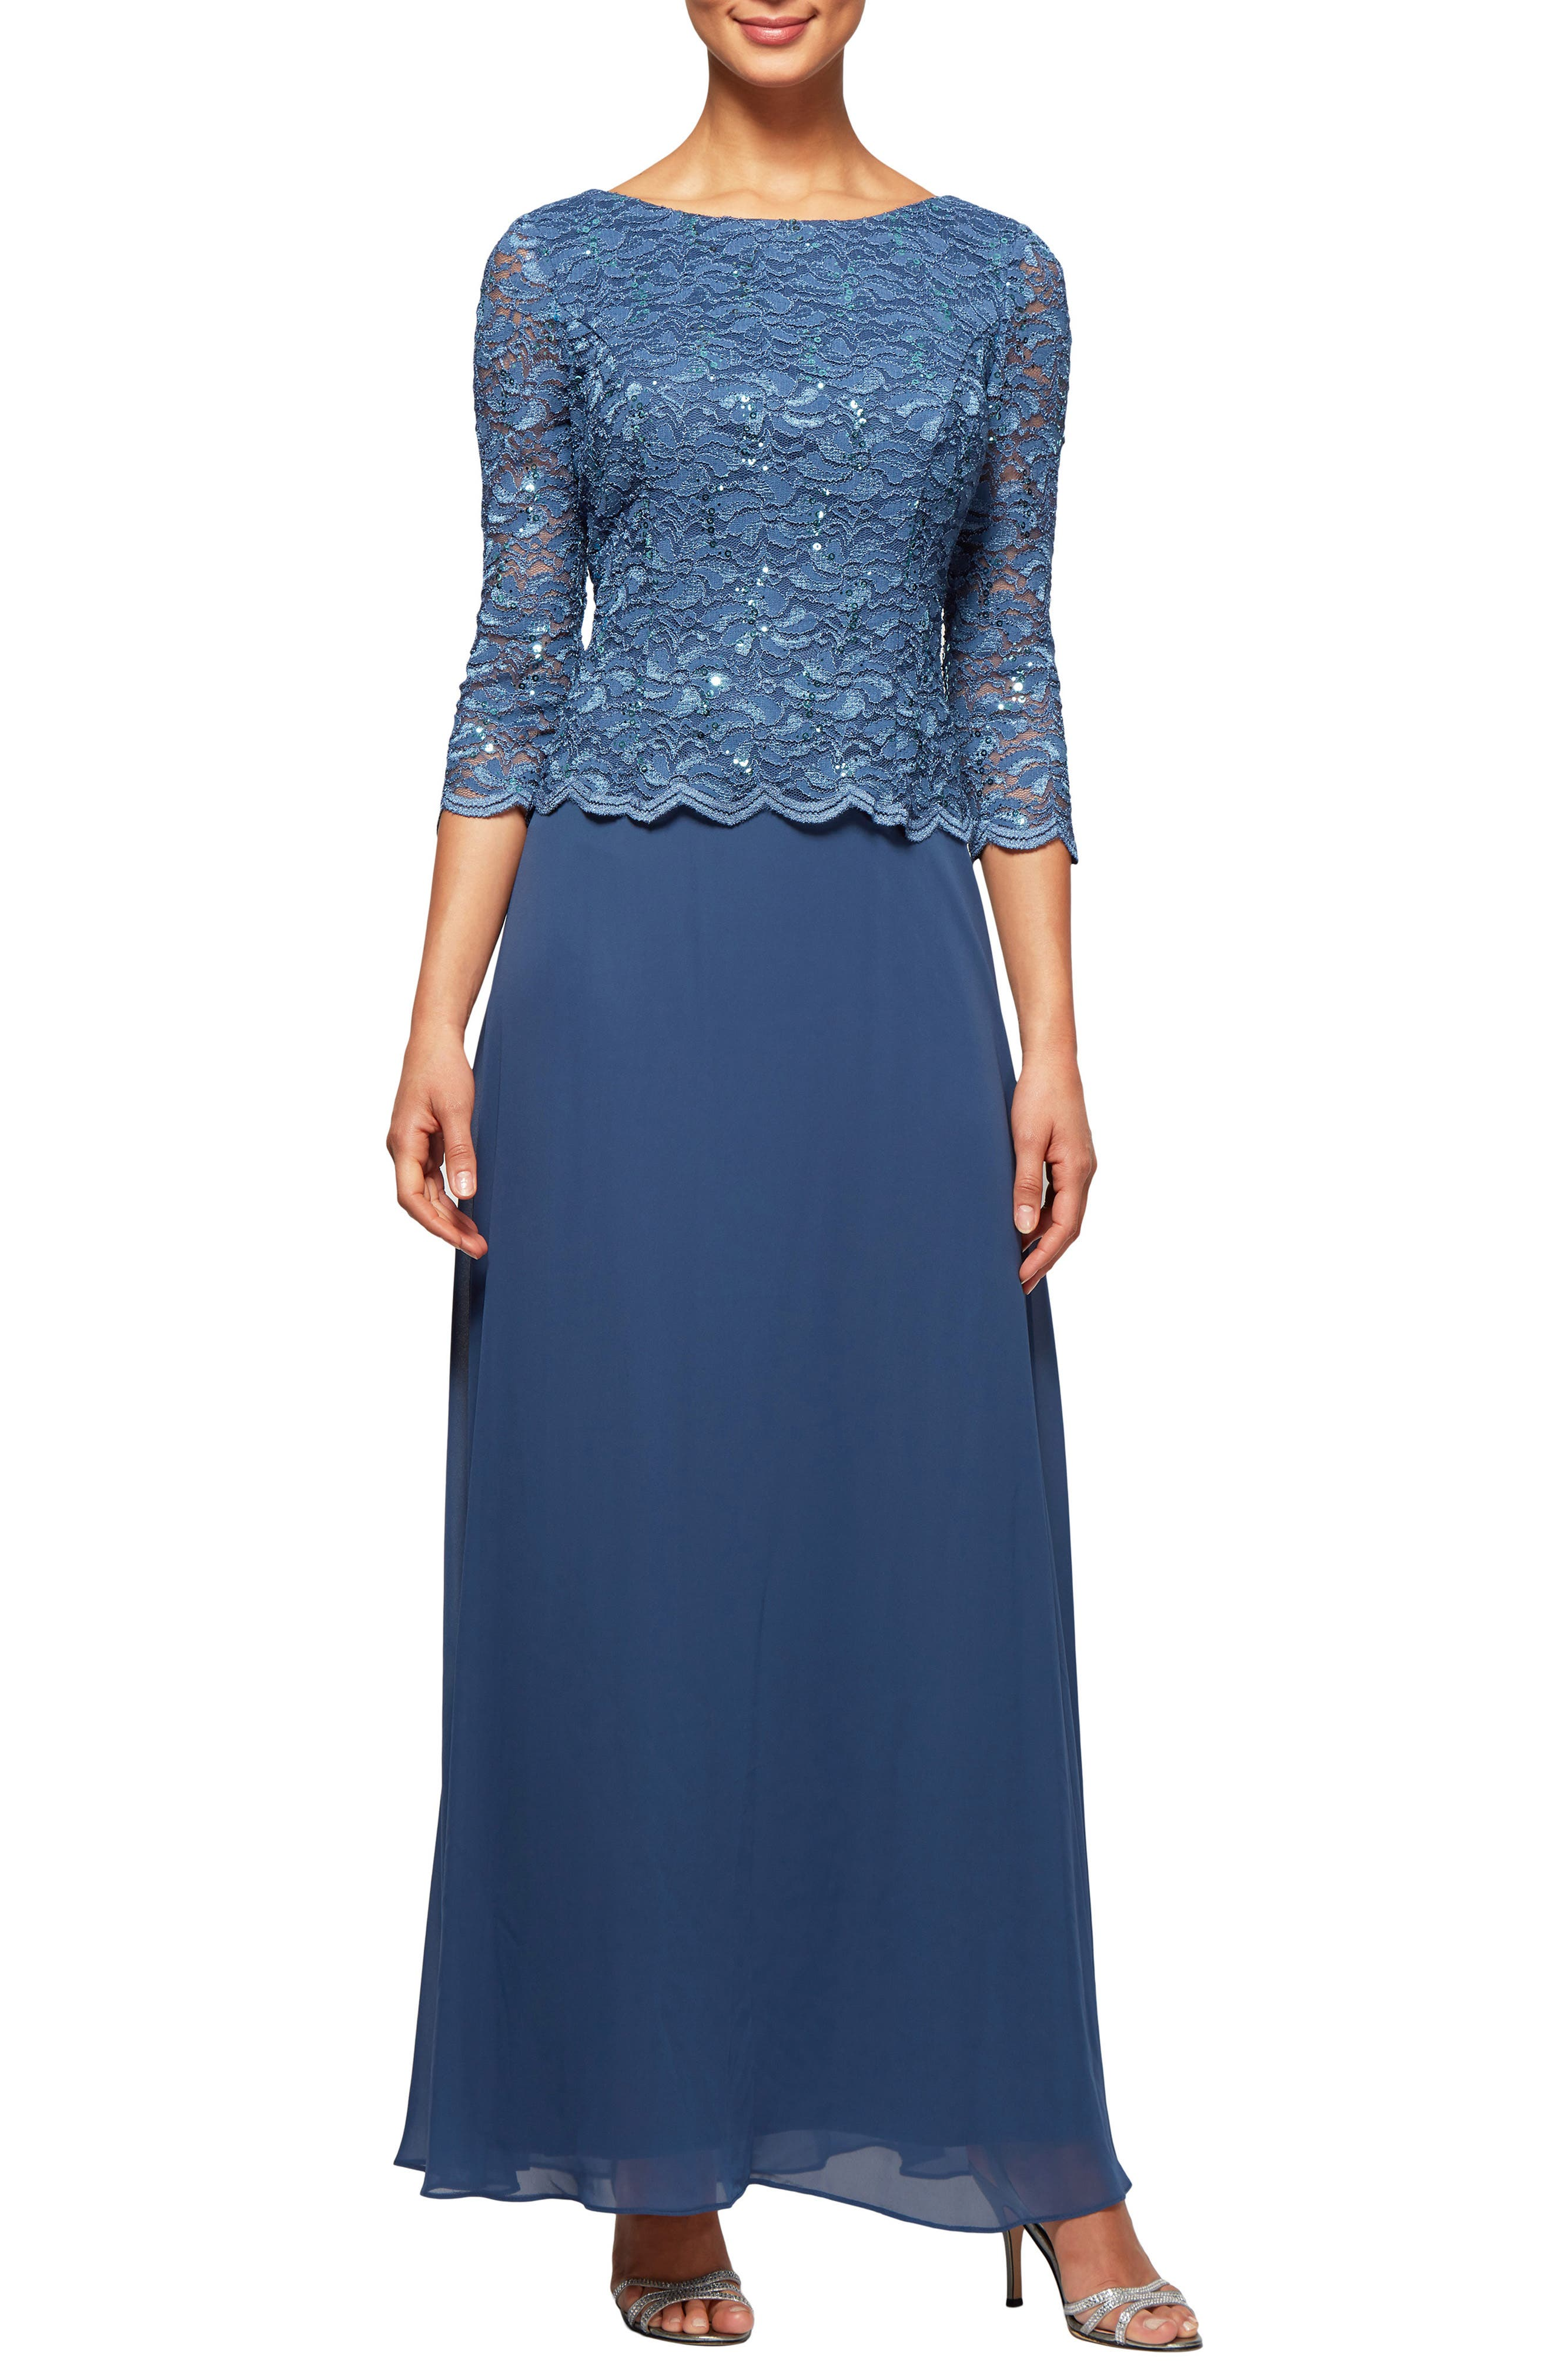 Achieve the polished look of two separate pieces in one enchanting dress with a floral-lace bodice and a full-length chiffon skirt. Style Name: Alex Evenings Mock Two-Piece Gown. Style Number: 738191 1. Available in stores.